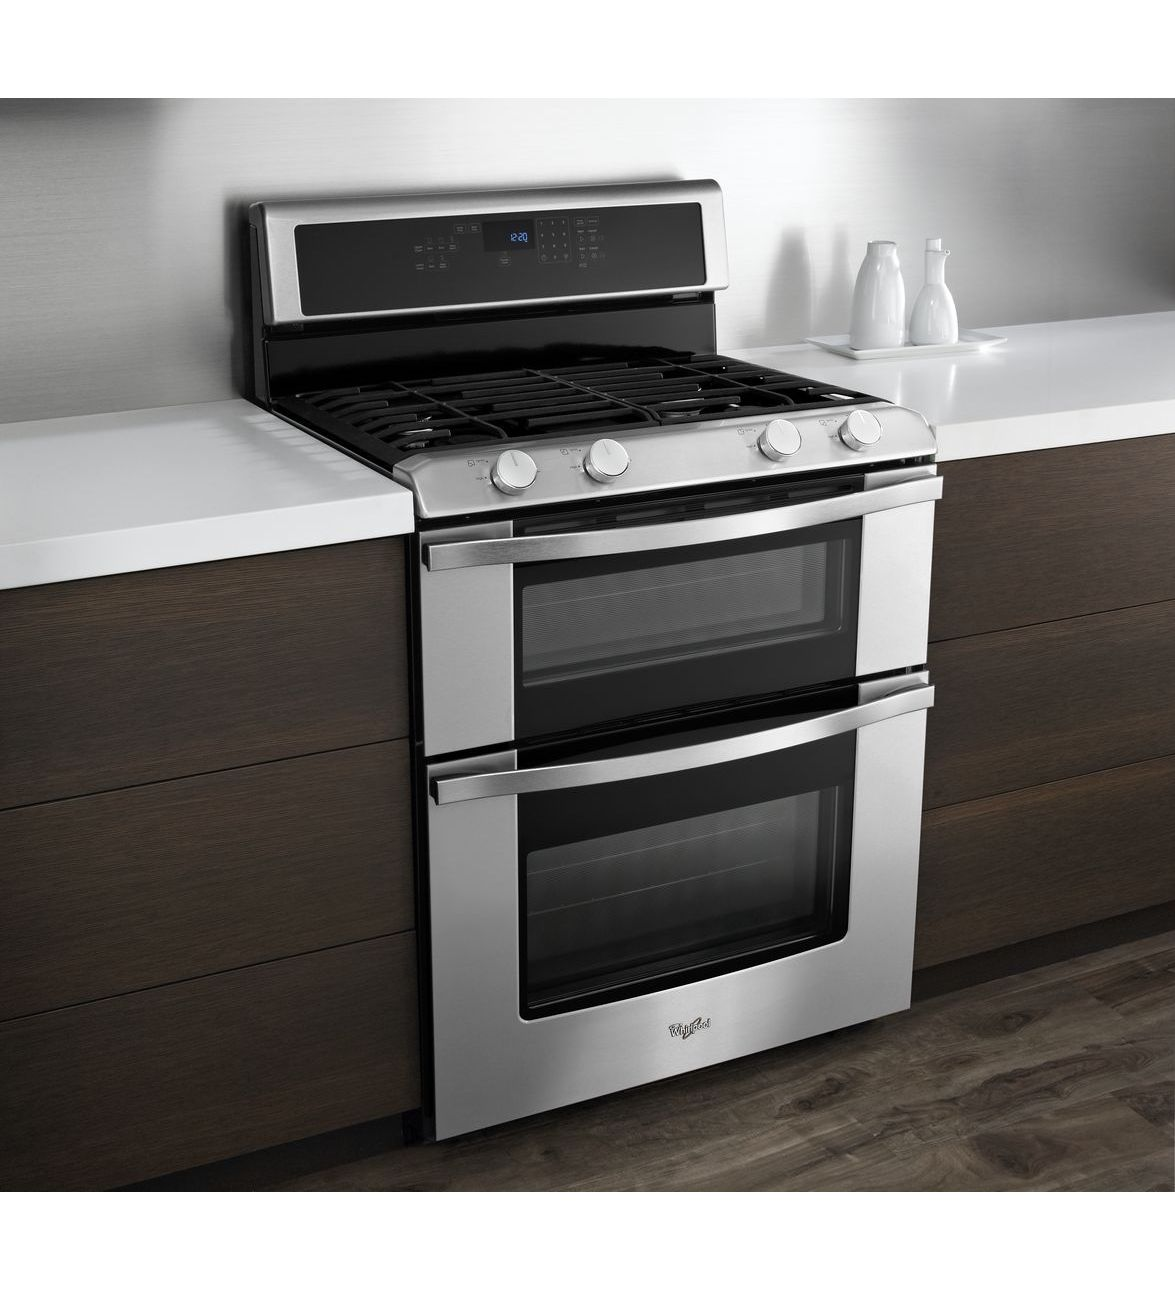 Whirlpool Wgg555s0bs 6 0 Total Cu Ft Double Oven Gas